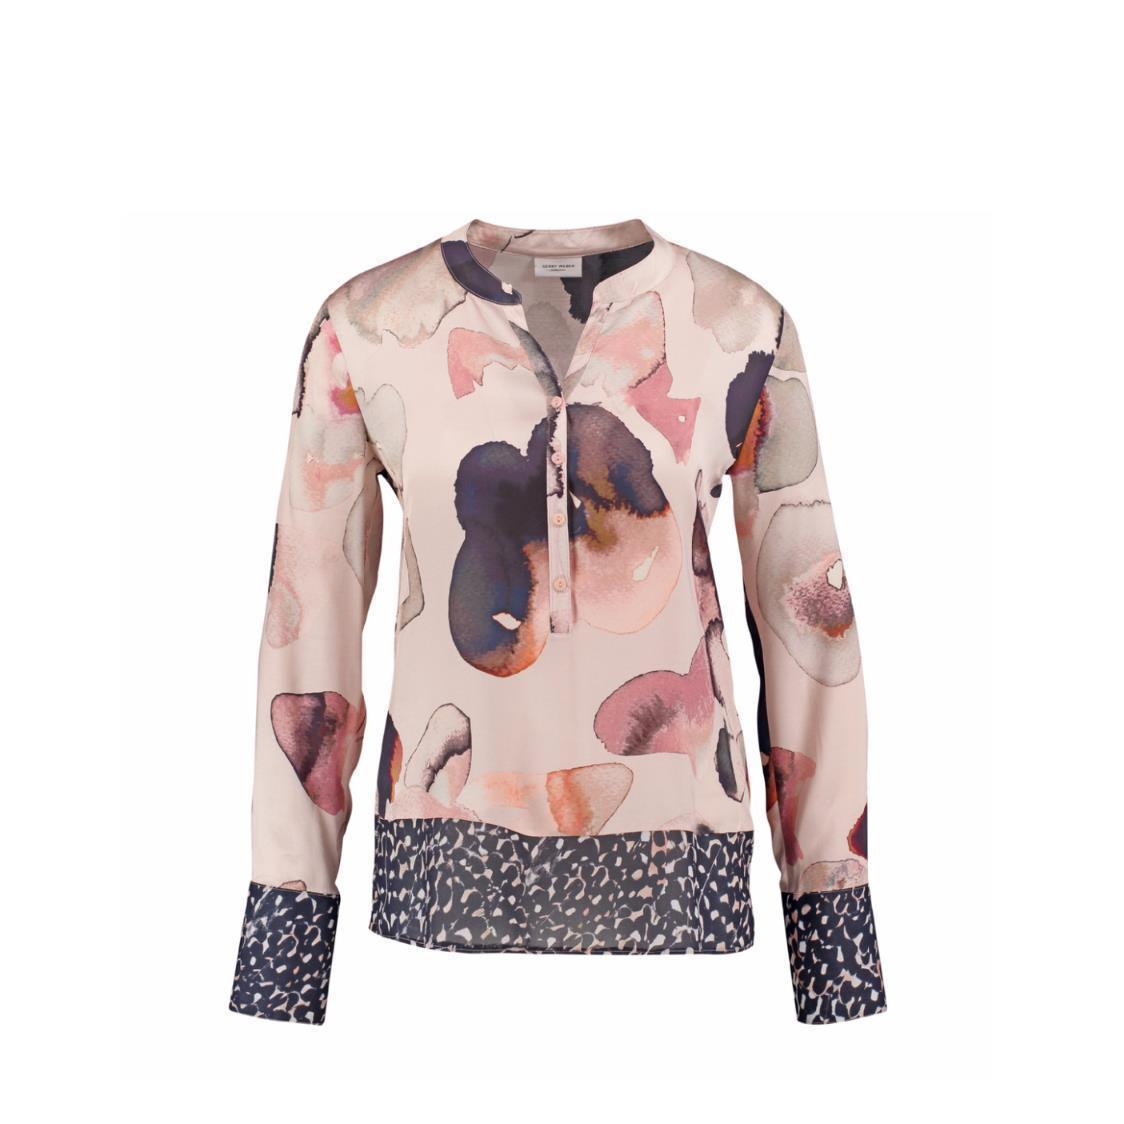 Printed button-down Top